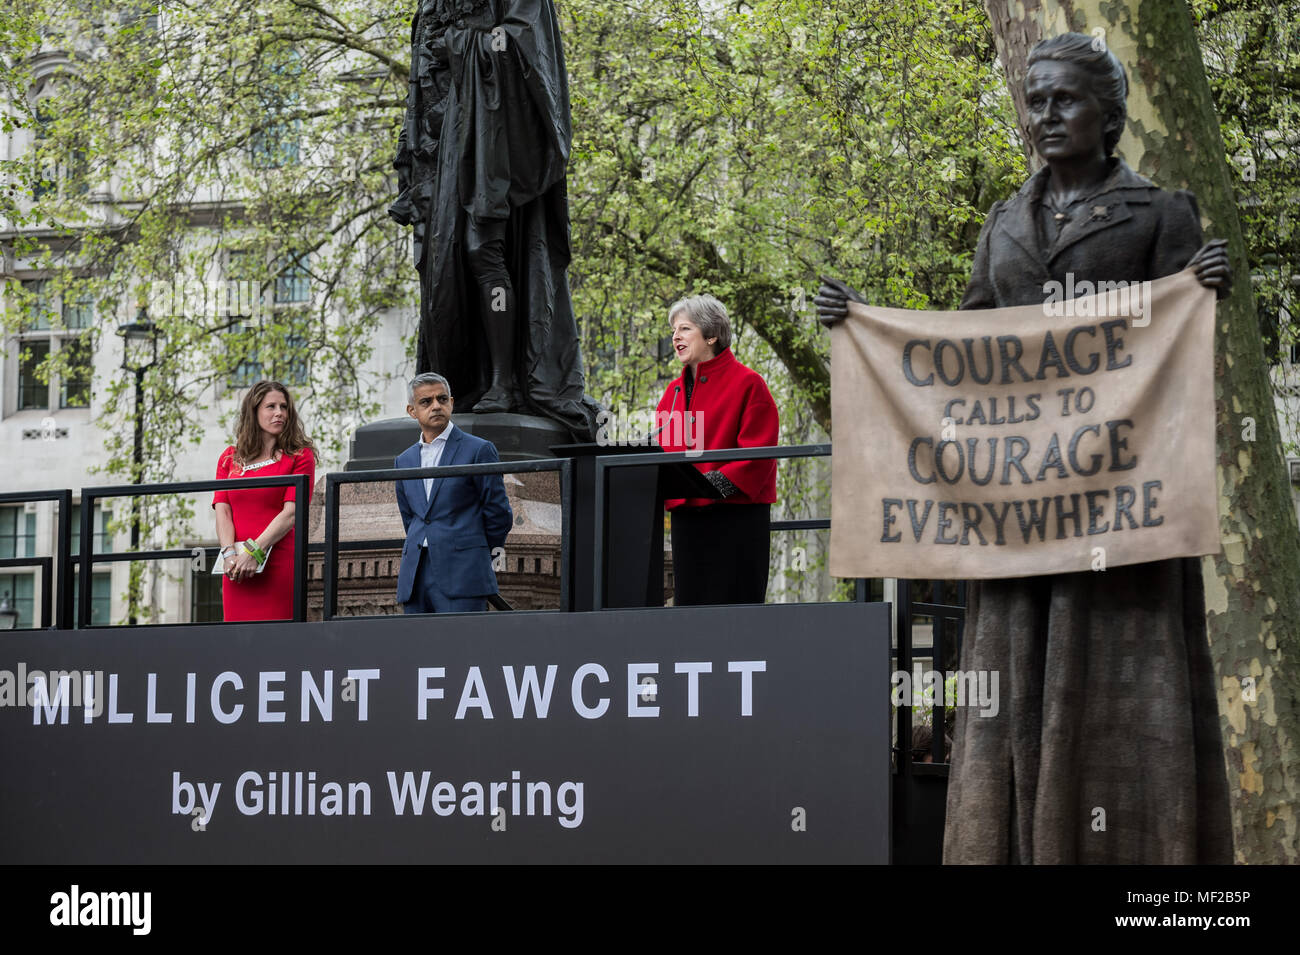 London, UK. 24th April, 2018. Statue of Millicent Fawcett is unveiled in Parliament Square. Caroline Criado-Perez, Theresa May and Sadiq Khan attended the unveiling ceremony. The first statue of a woman in Parliament Square joins the line-up of male figures to mark the centenary of women's suffrage in Britain - two years after the campaign to get female representation outside the Palace of Westminster began. Credit: Guy Corbishley/Alamy Live News - Stock Image